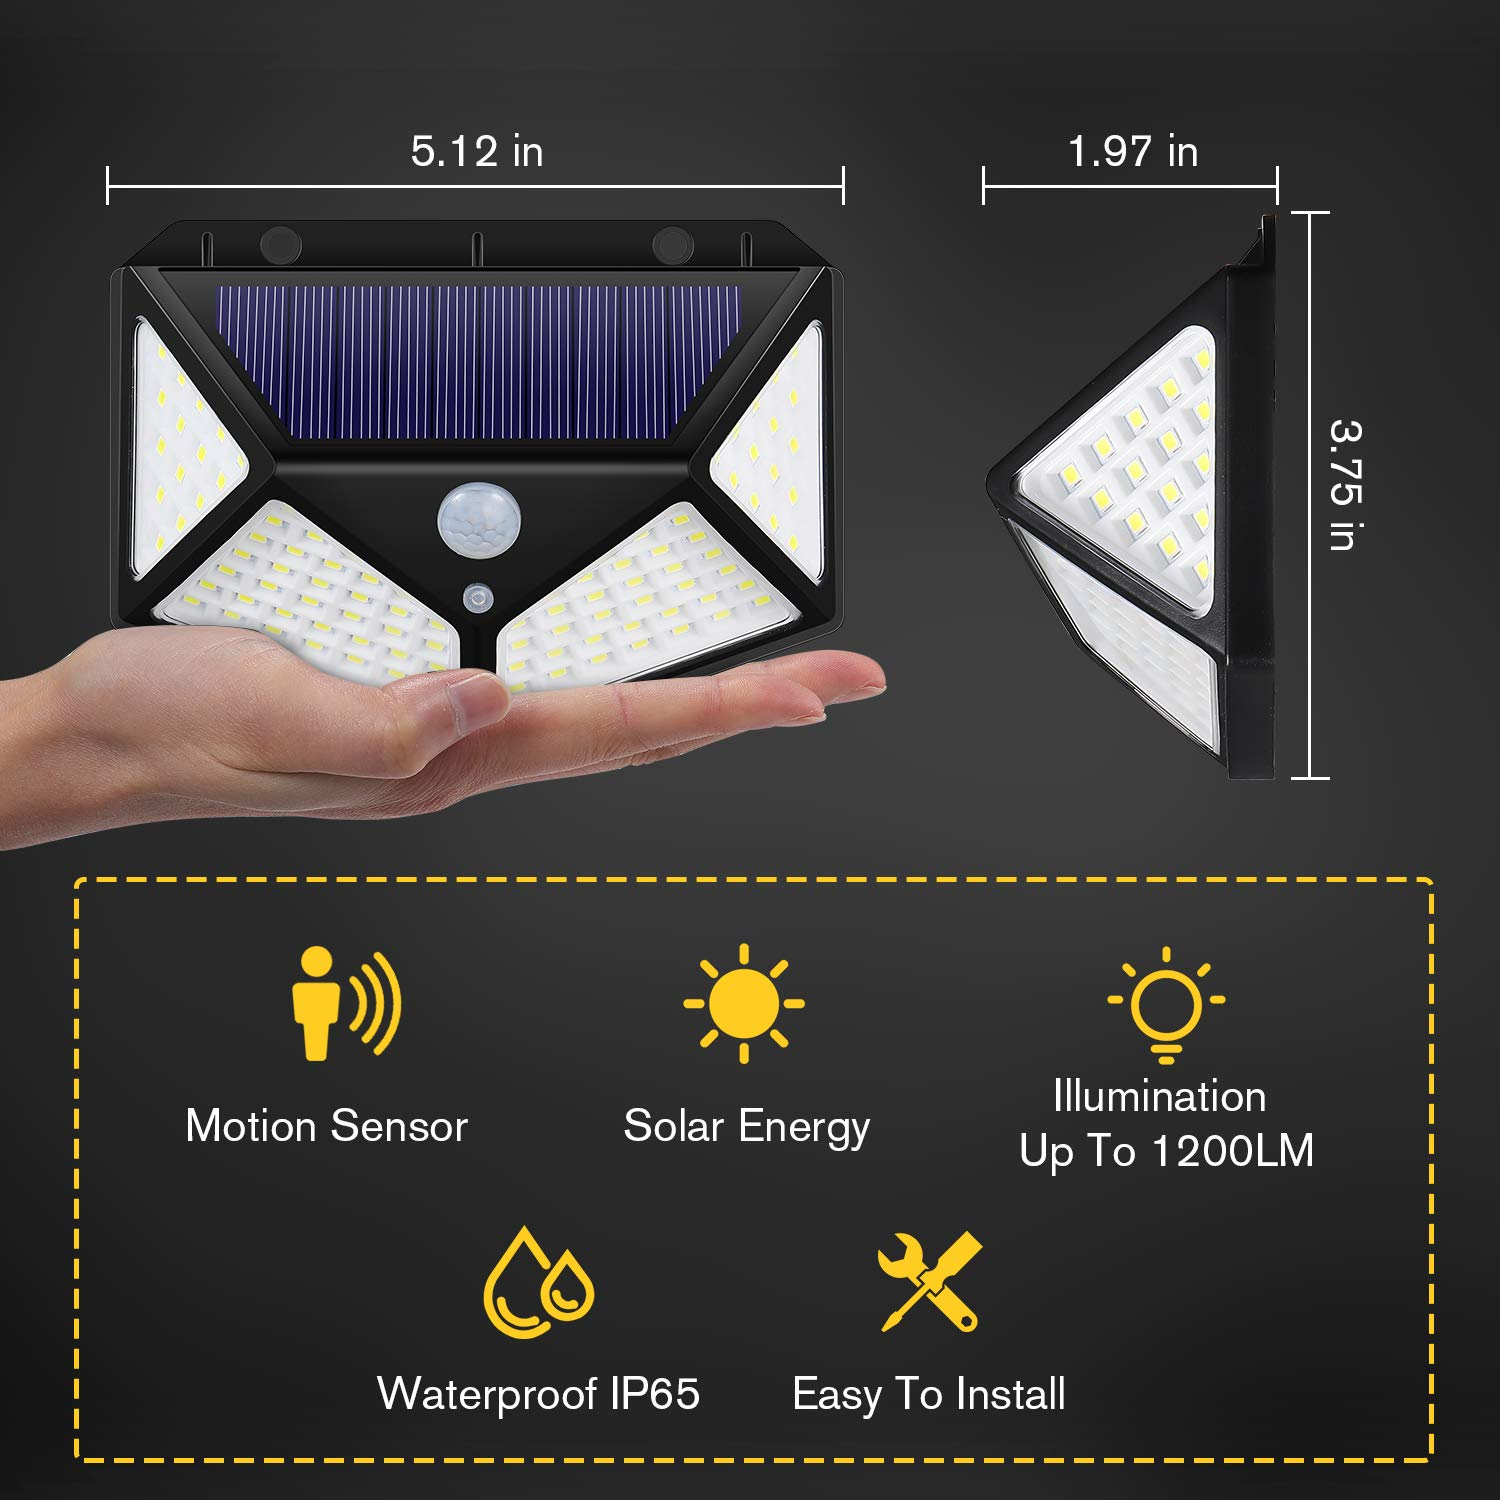 Bl Wide Angle Outdoor Solar Light Wireless Solar Powered Security Wall Light for Front Door 100 LED Super Bright Porch and More Garage Pathway Motion Sensor Light with 3 Working Modes Backyard